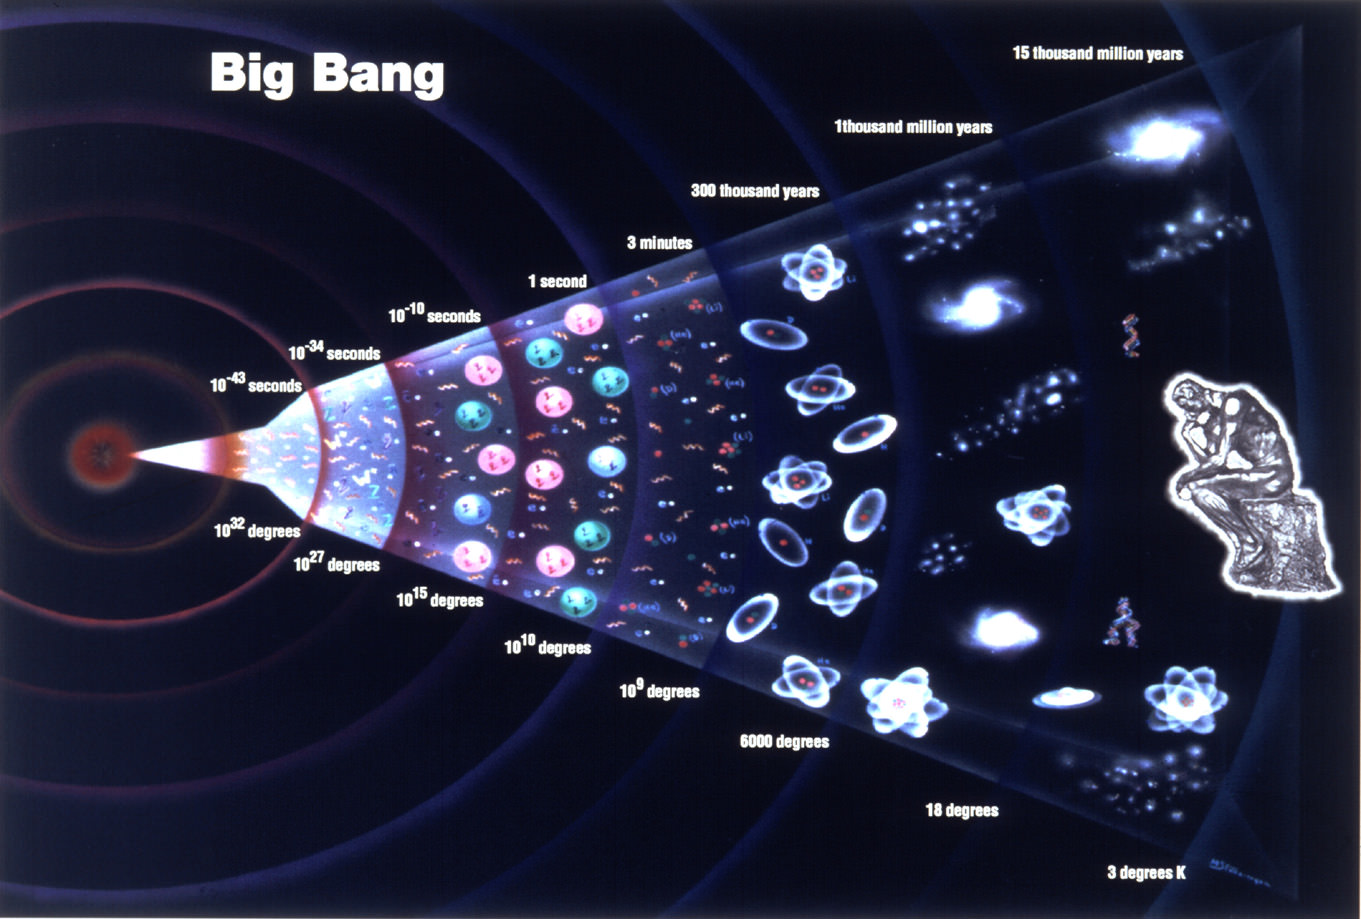 Big Bang Theory Evolution Of Our Universe